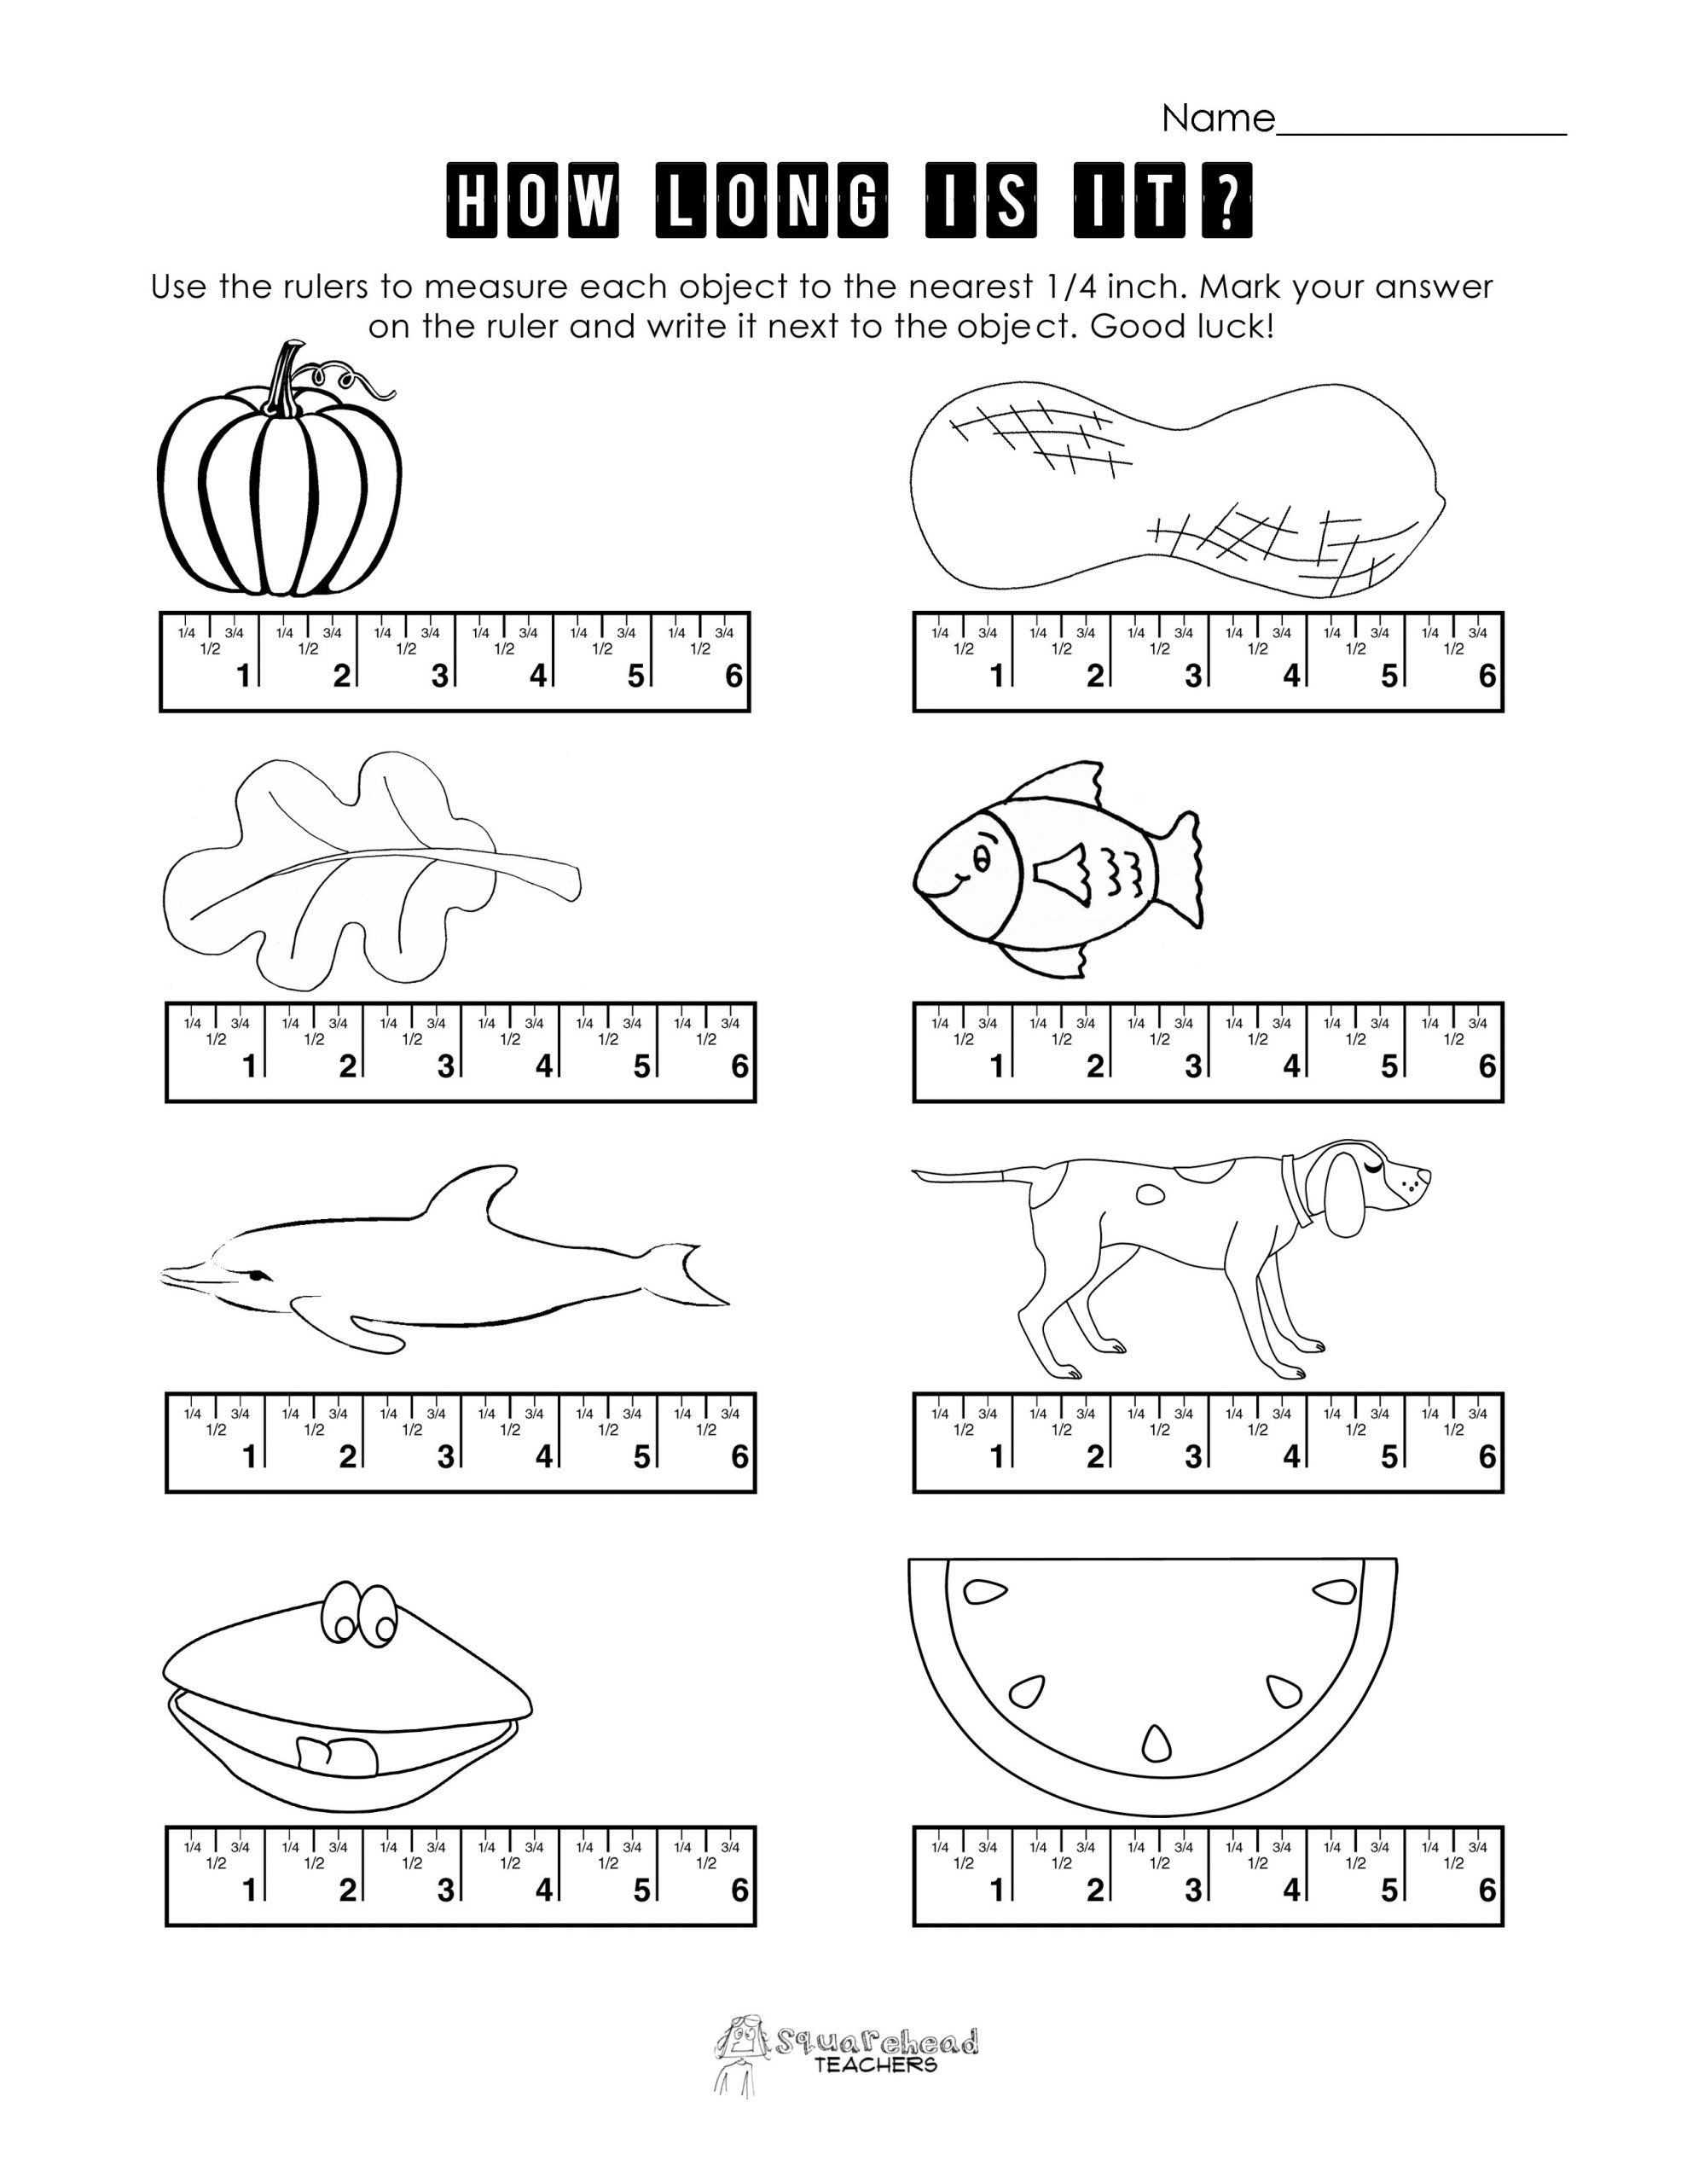 3rd Grade Measurement Worksheet Pin On 1st Grade Worksheets & Free Printables